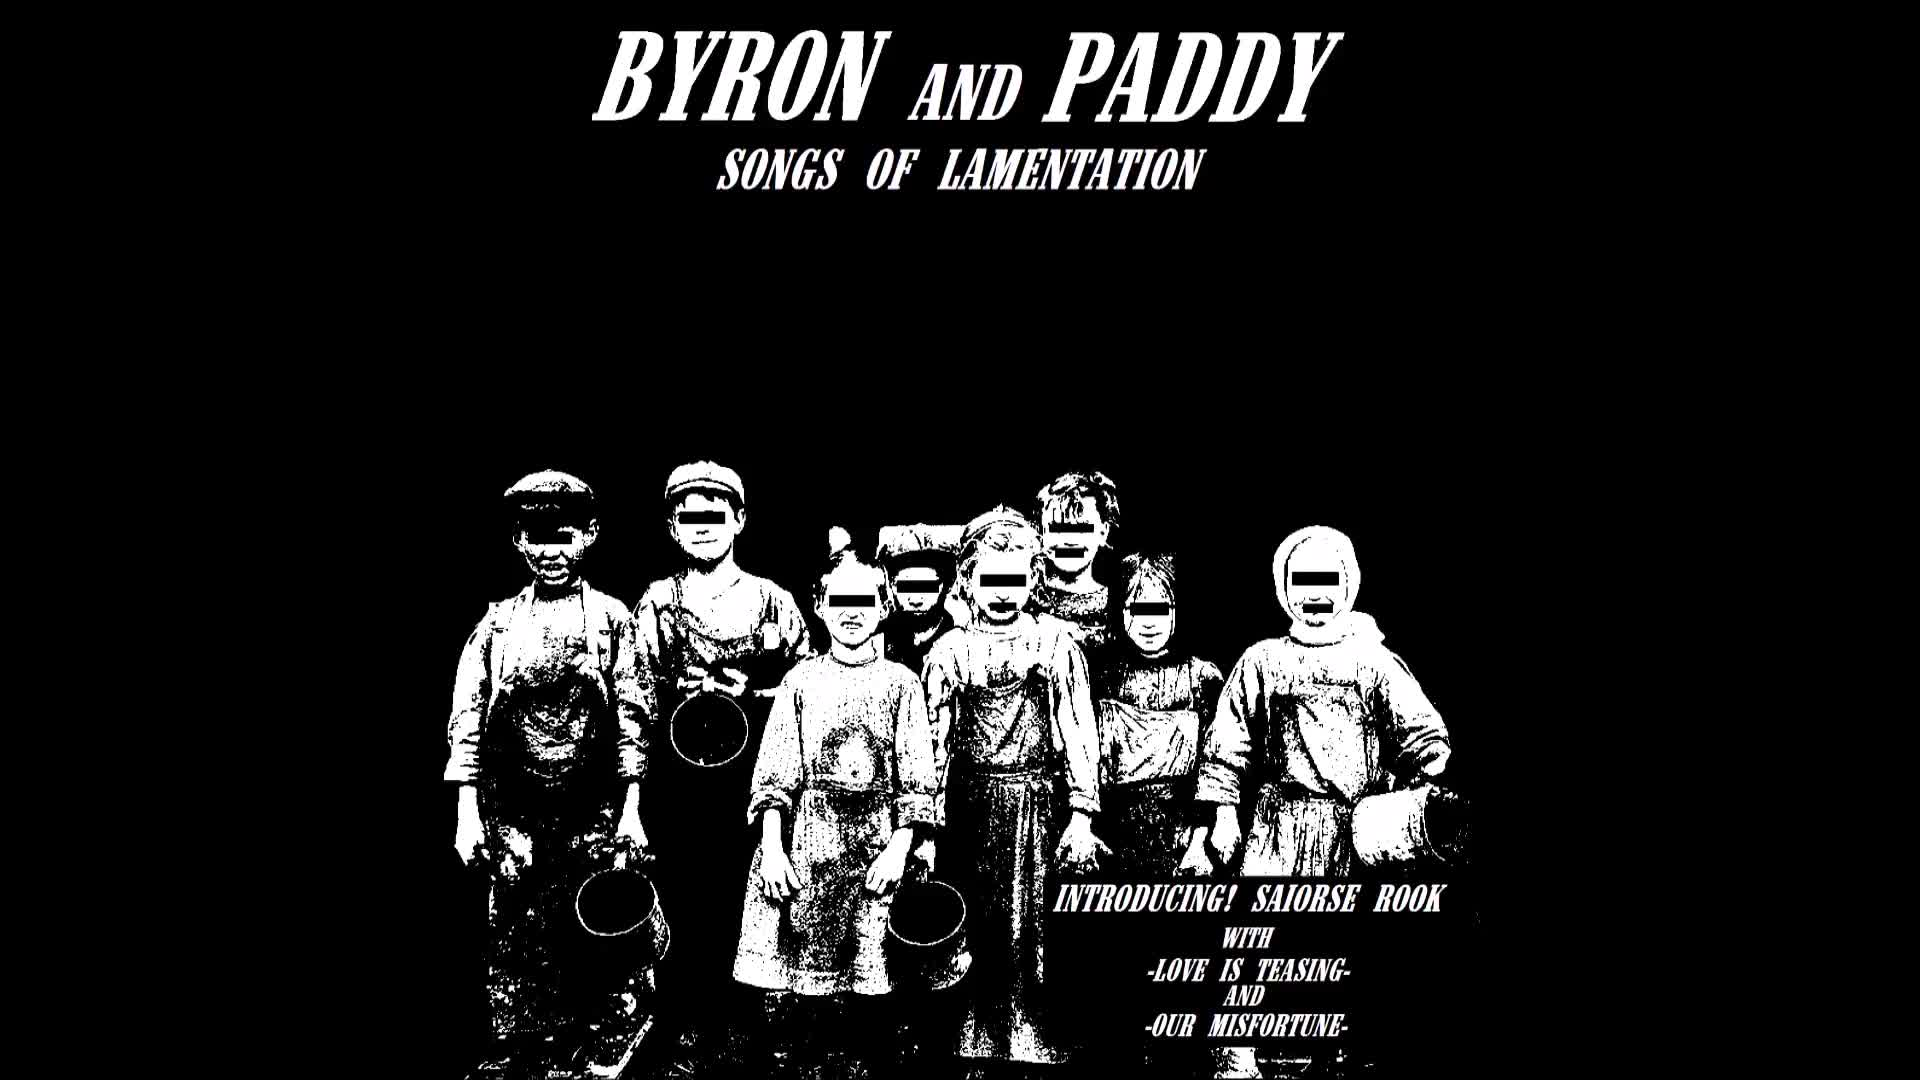 We Shall Overcome by Paddy Tarleton & Byron de la Vandal [Songs of Lamentation track 10]